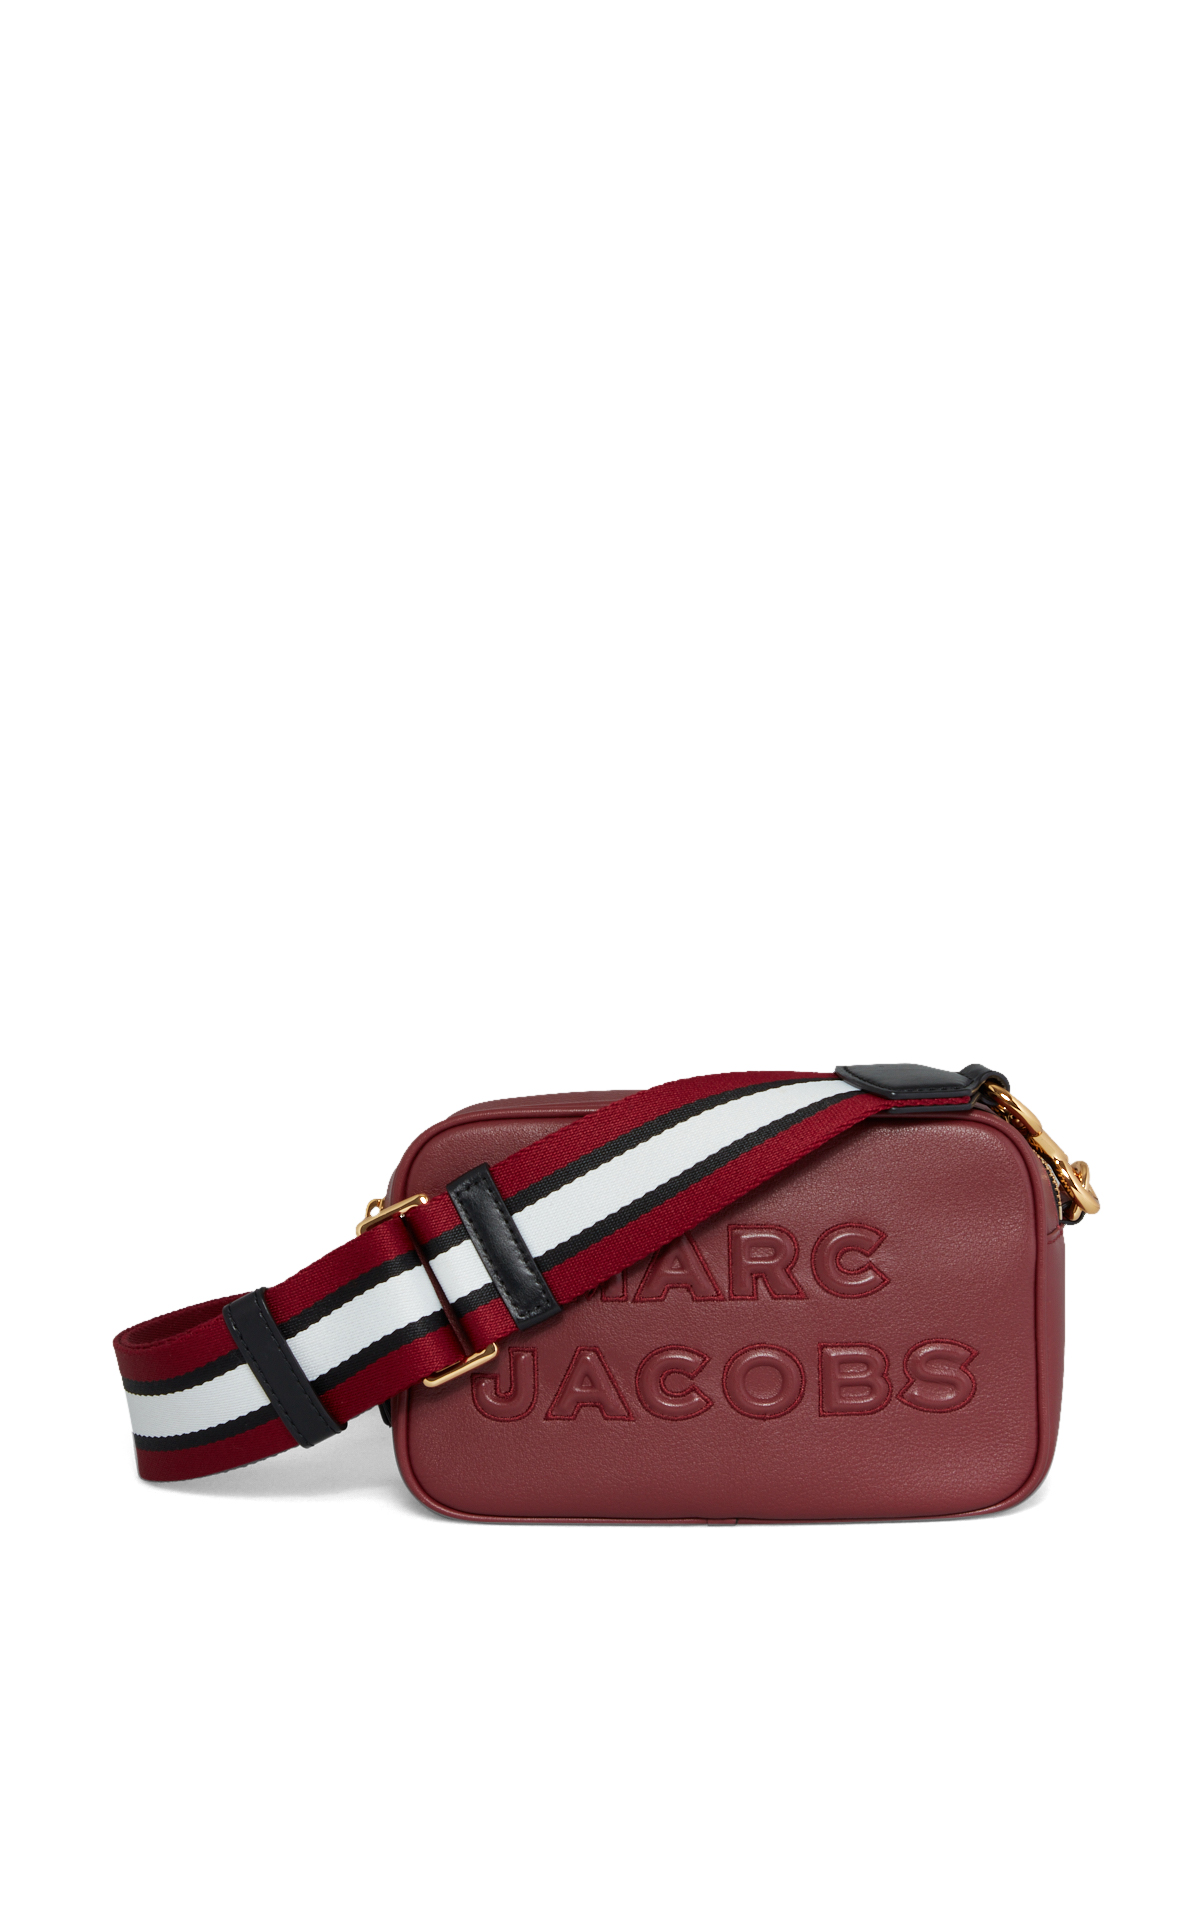 Marc Jacobs Sac Flash bordeaux